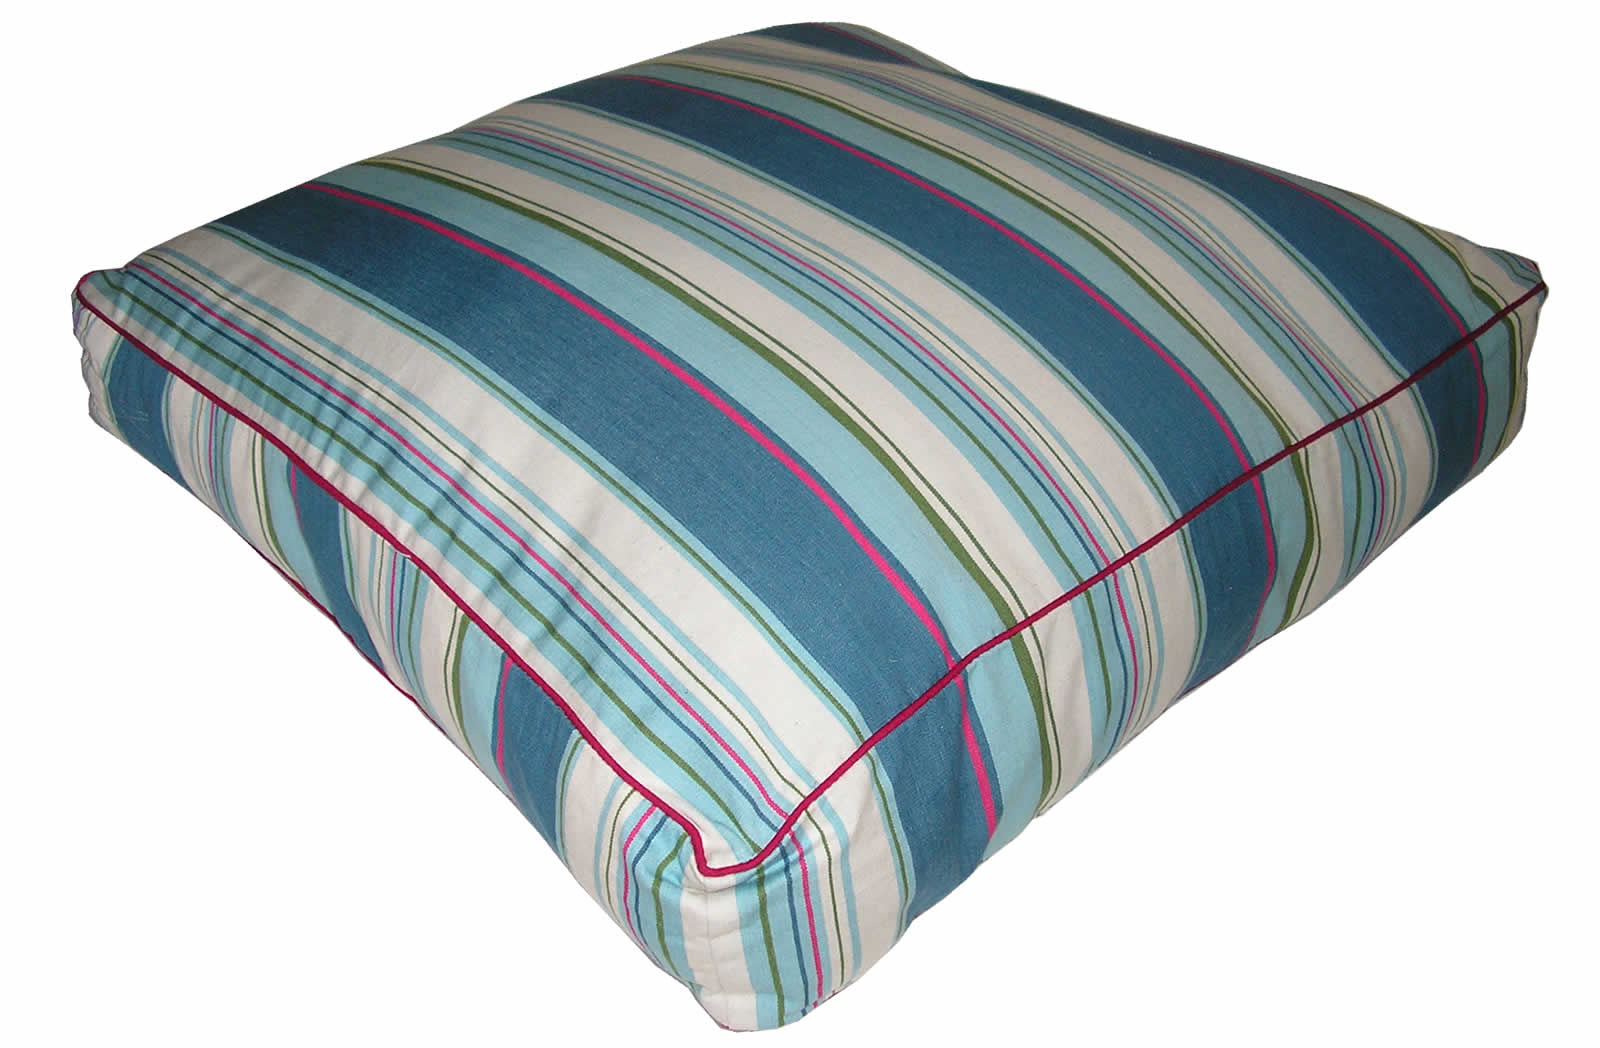 Petrol Blue Striped Floor Cushions | Large Square Piped Floor Cushions Petrol Blue  Pale Blue  Cream  Stripes